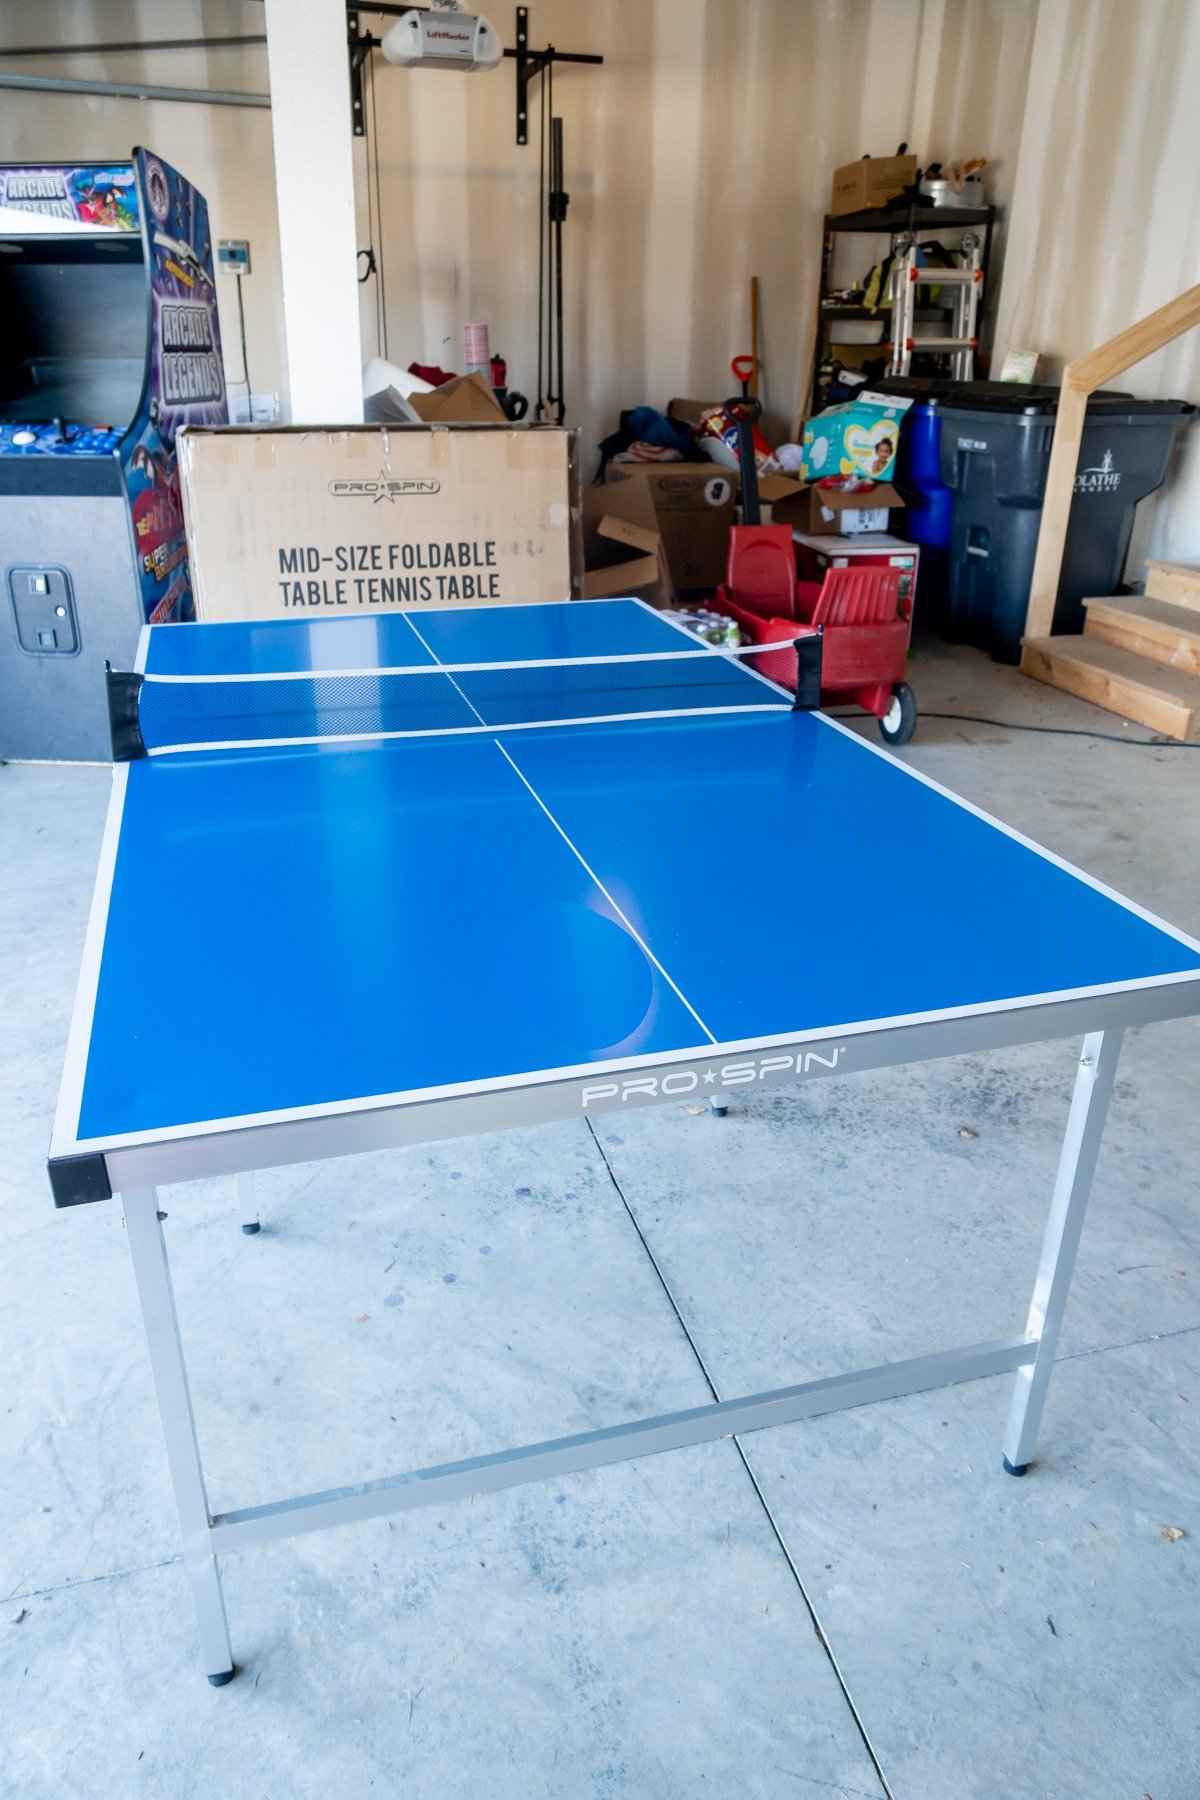 Pro-spin foldable ping pong table in a garage